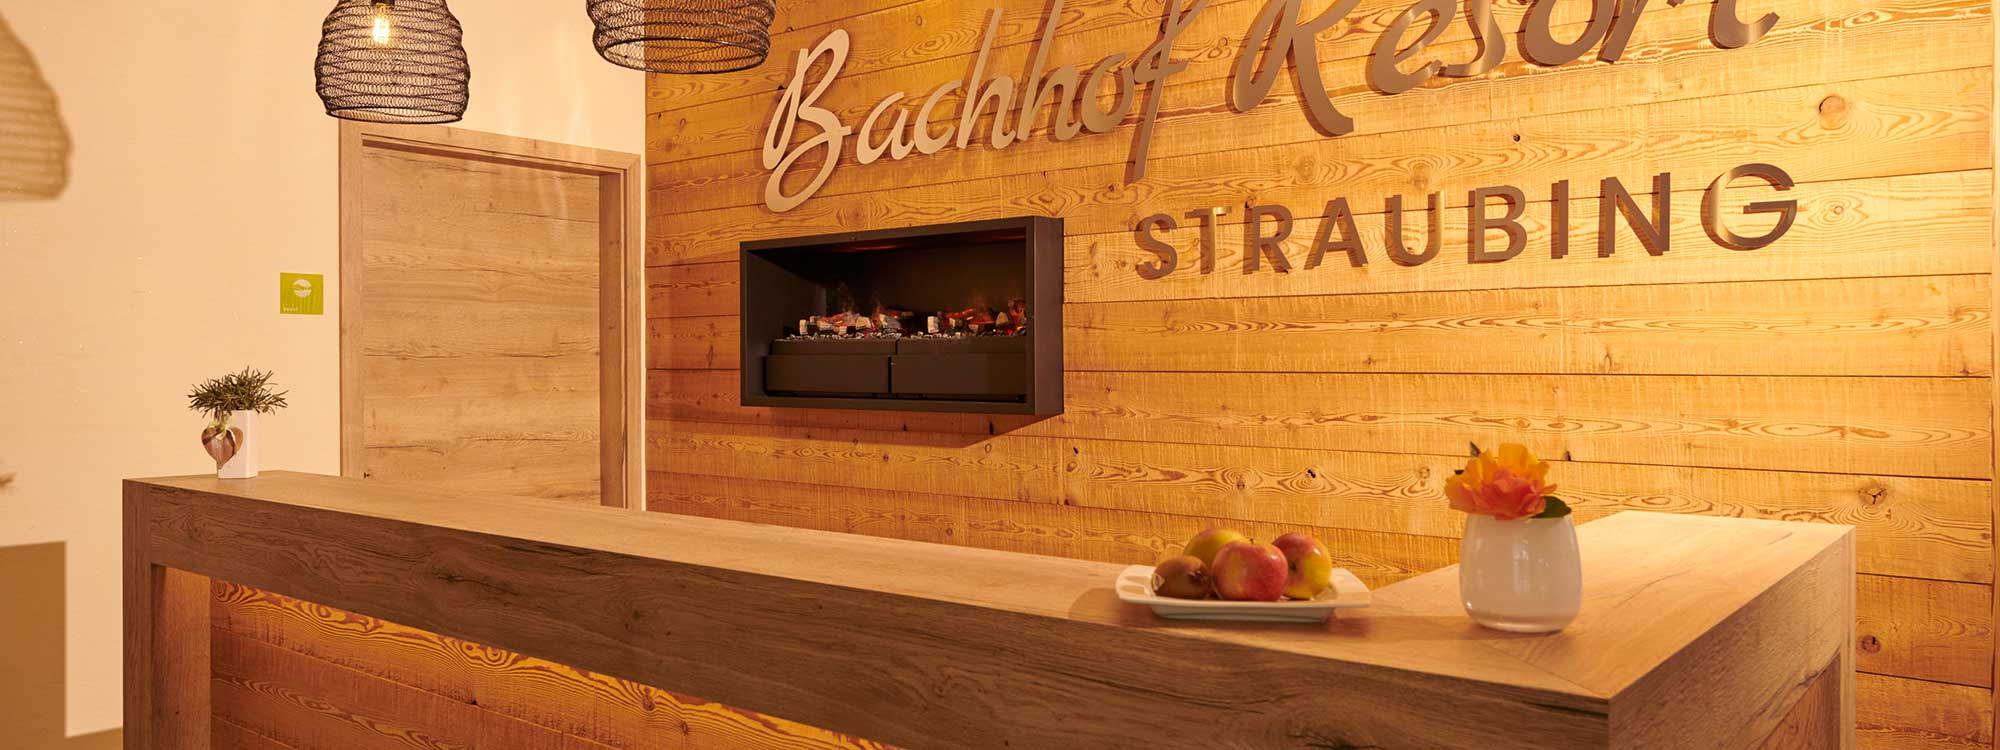 Rezeption im Bachhof Resort Straubing